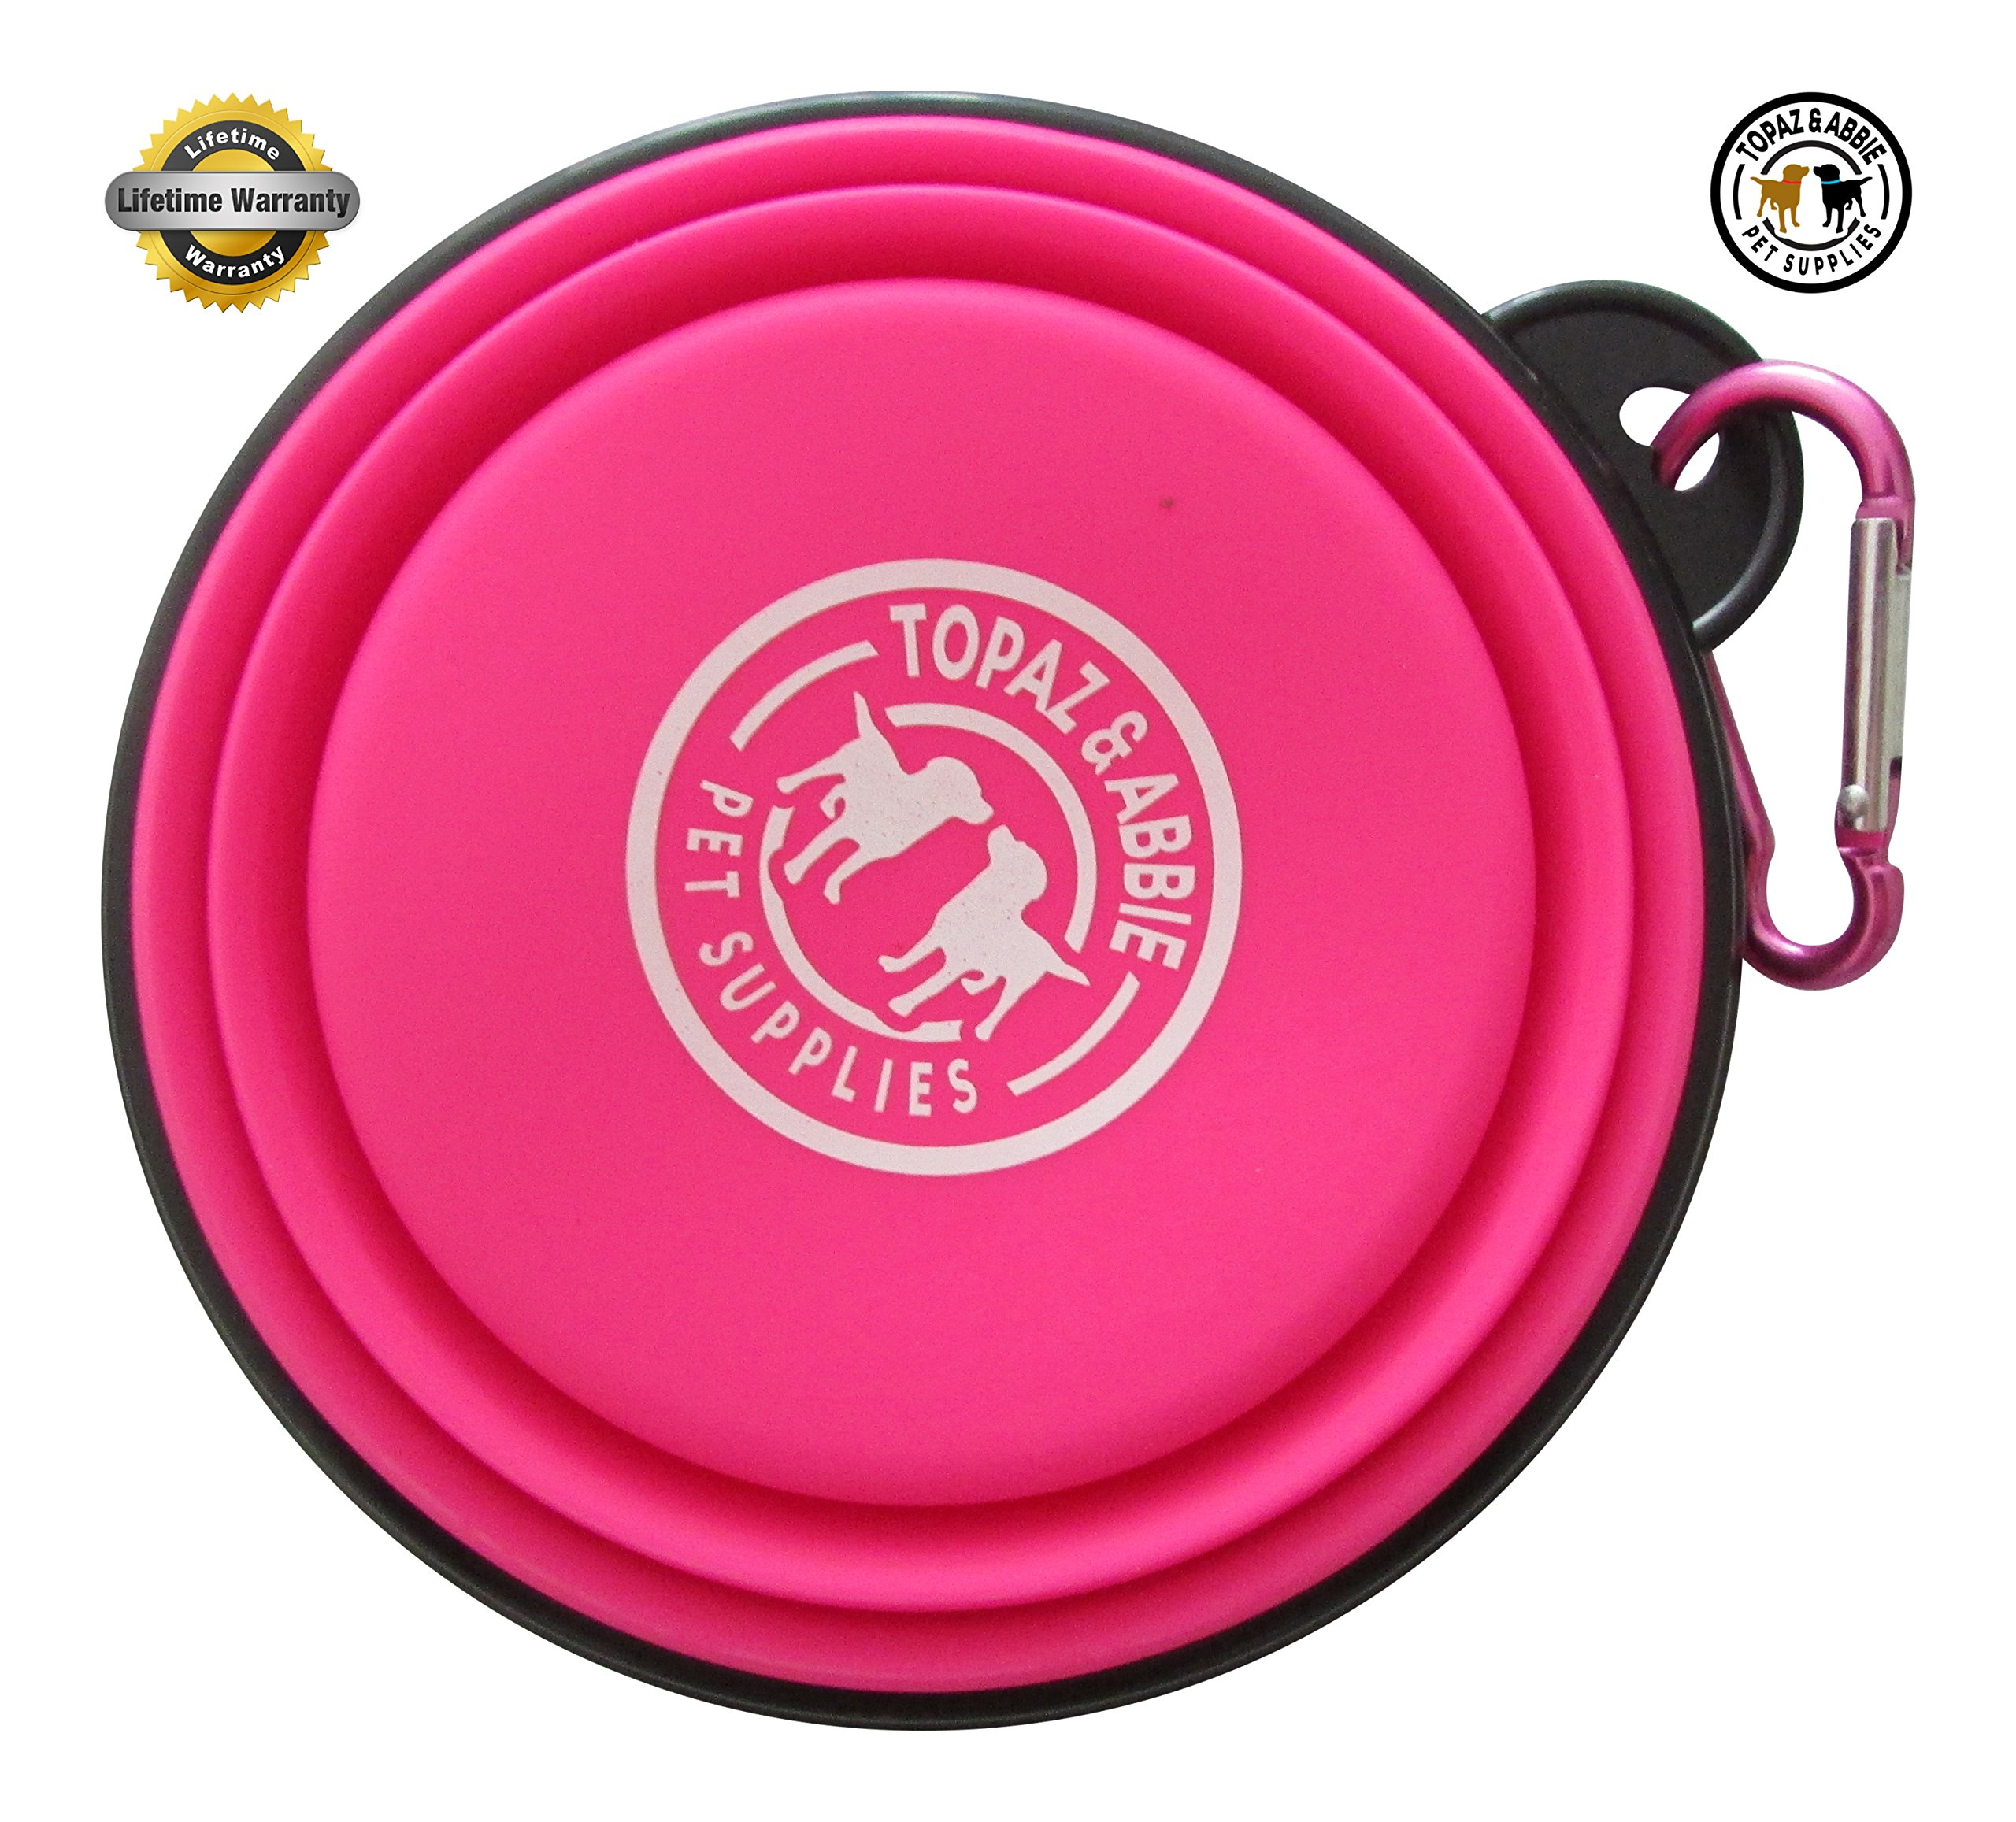 Travel Dog Bowl Collapsible BEST QUALITY by Topaz & Abbie - Premium Quality Pet Travel Bowl for Food & Water Bowls in Bright Colors - 100% (PINK)